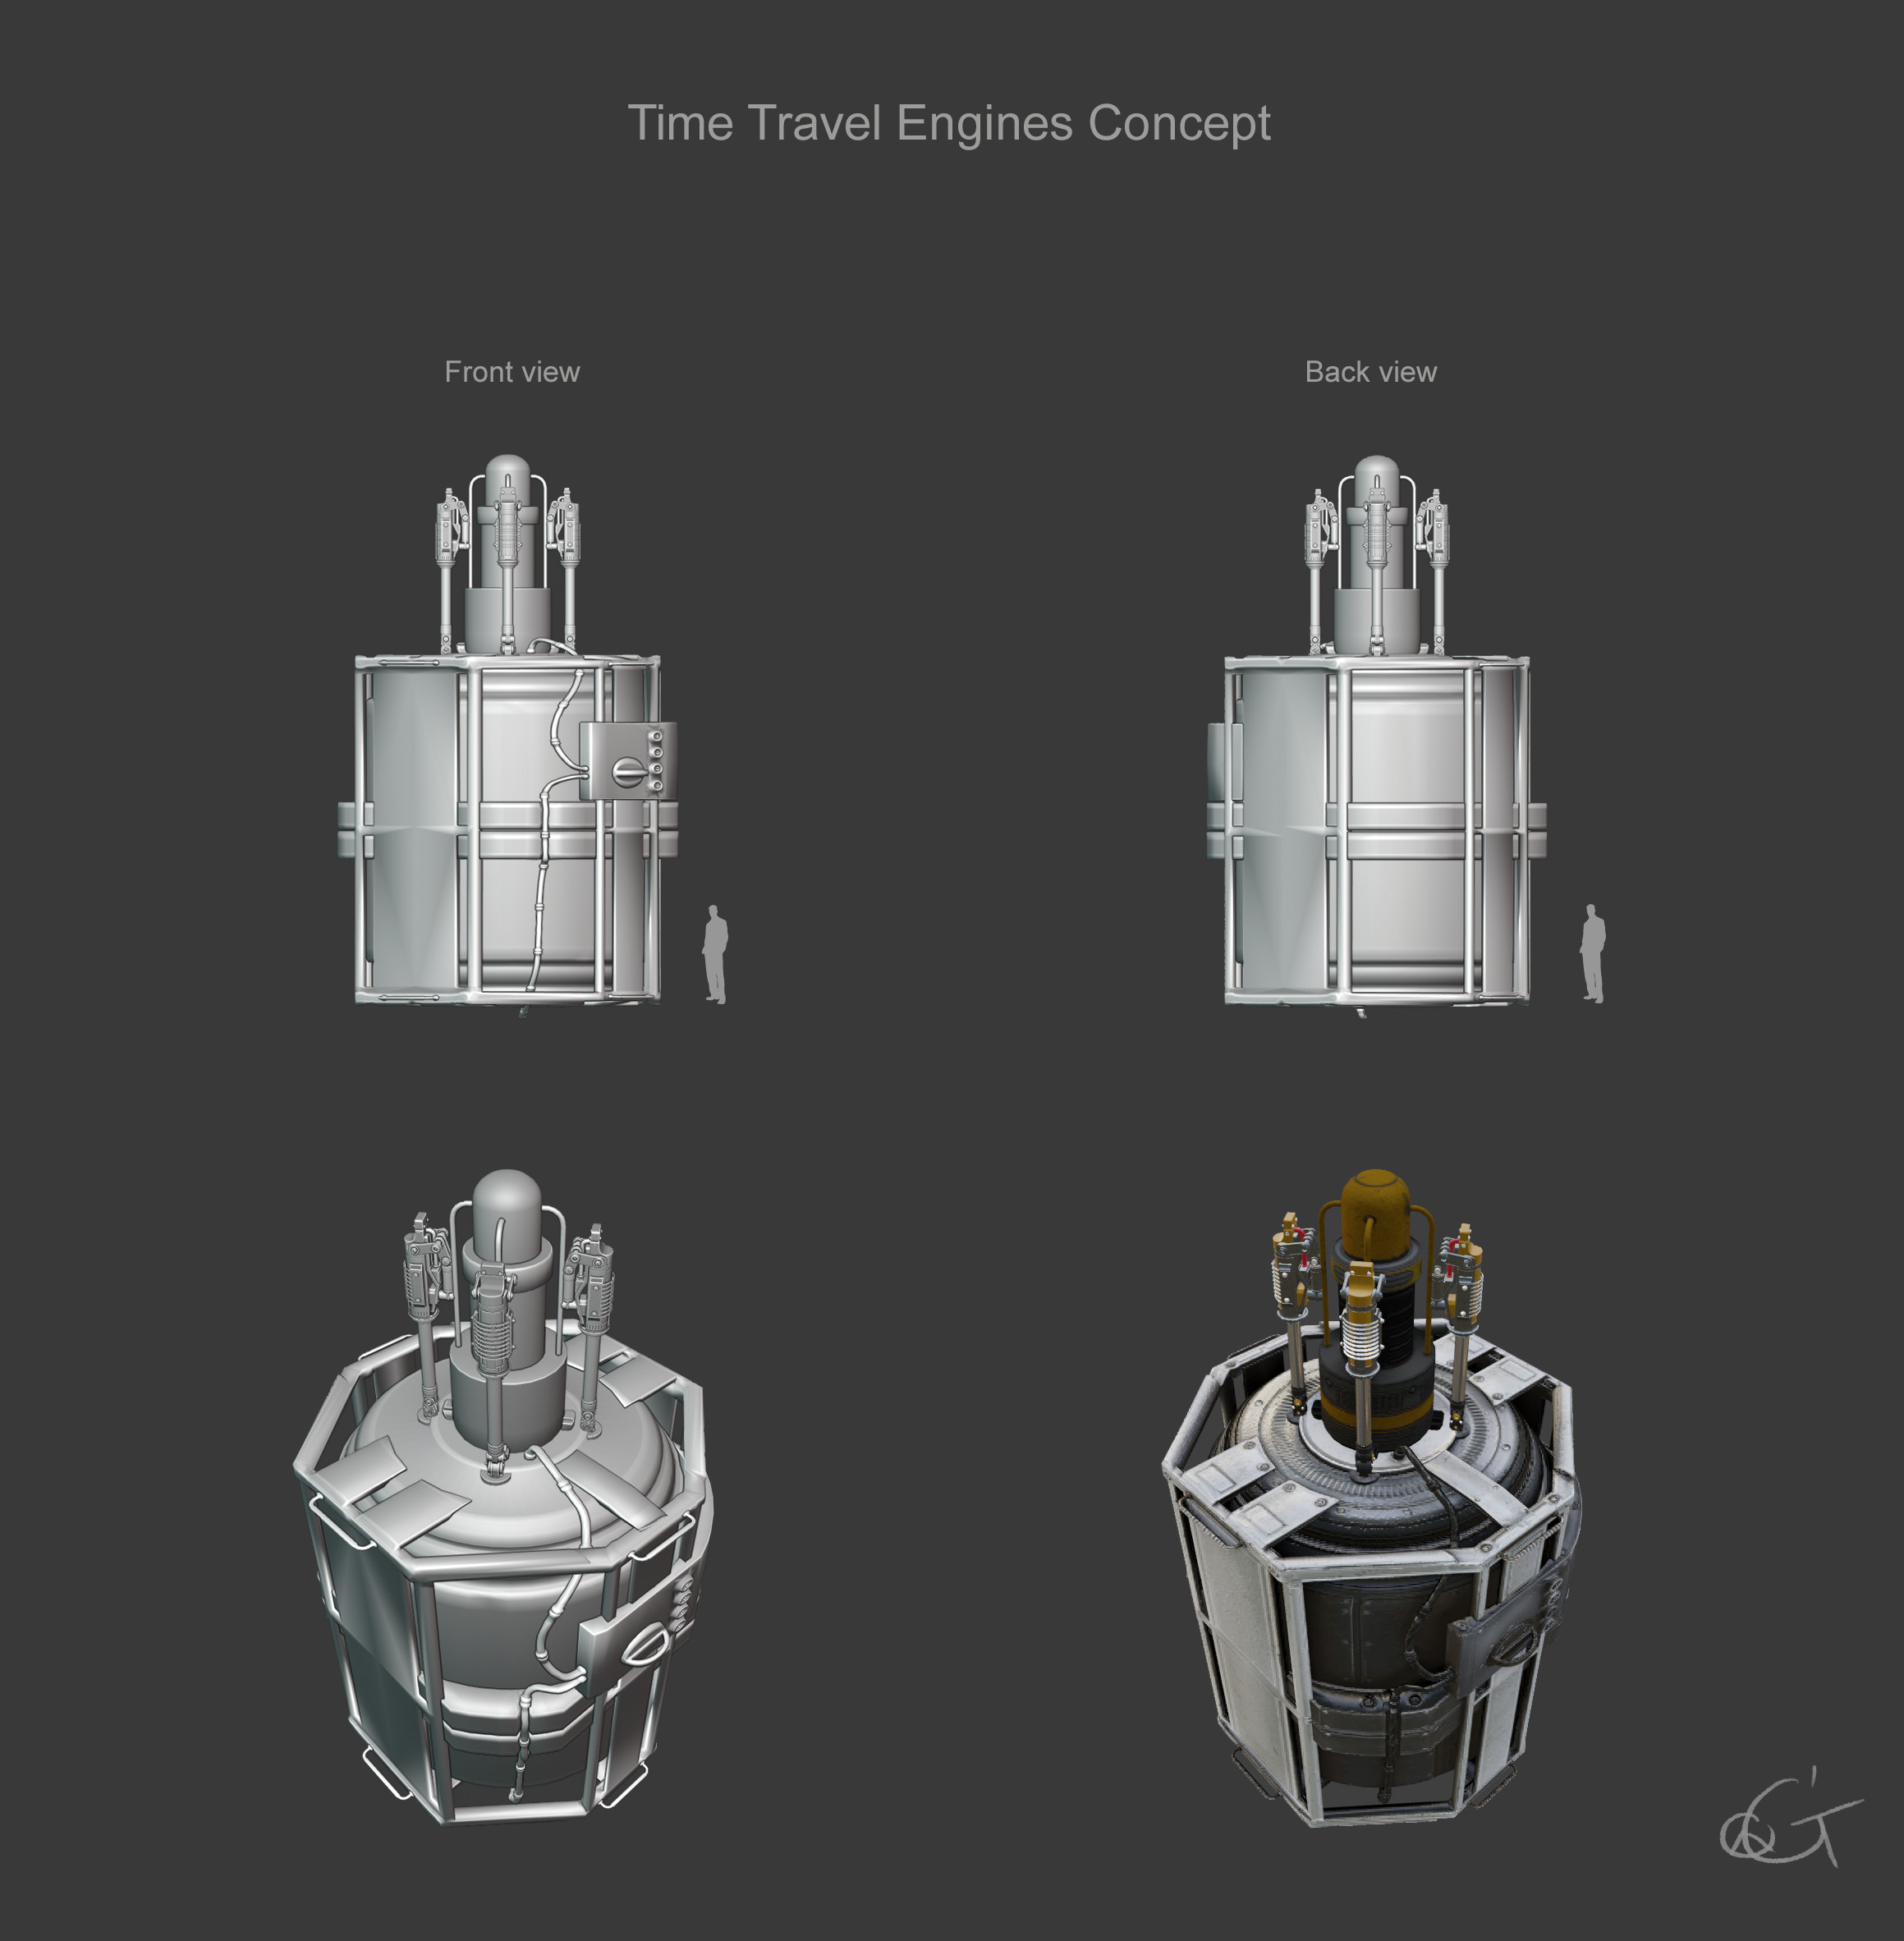 Time Travel Engines concept